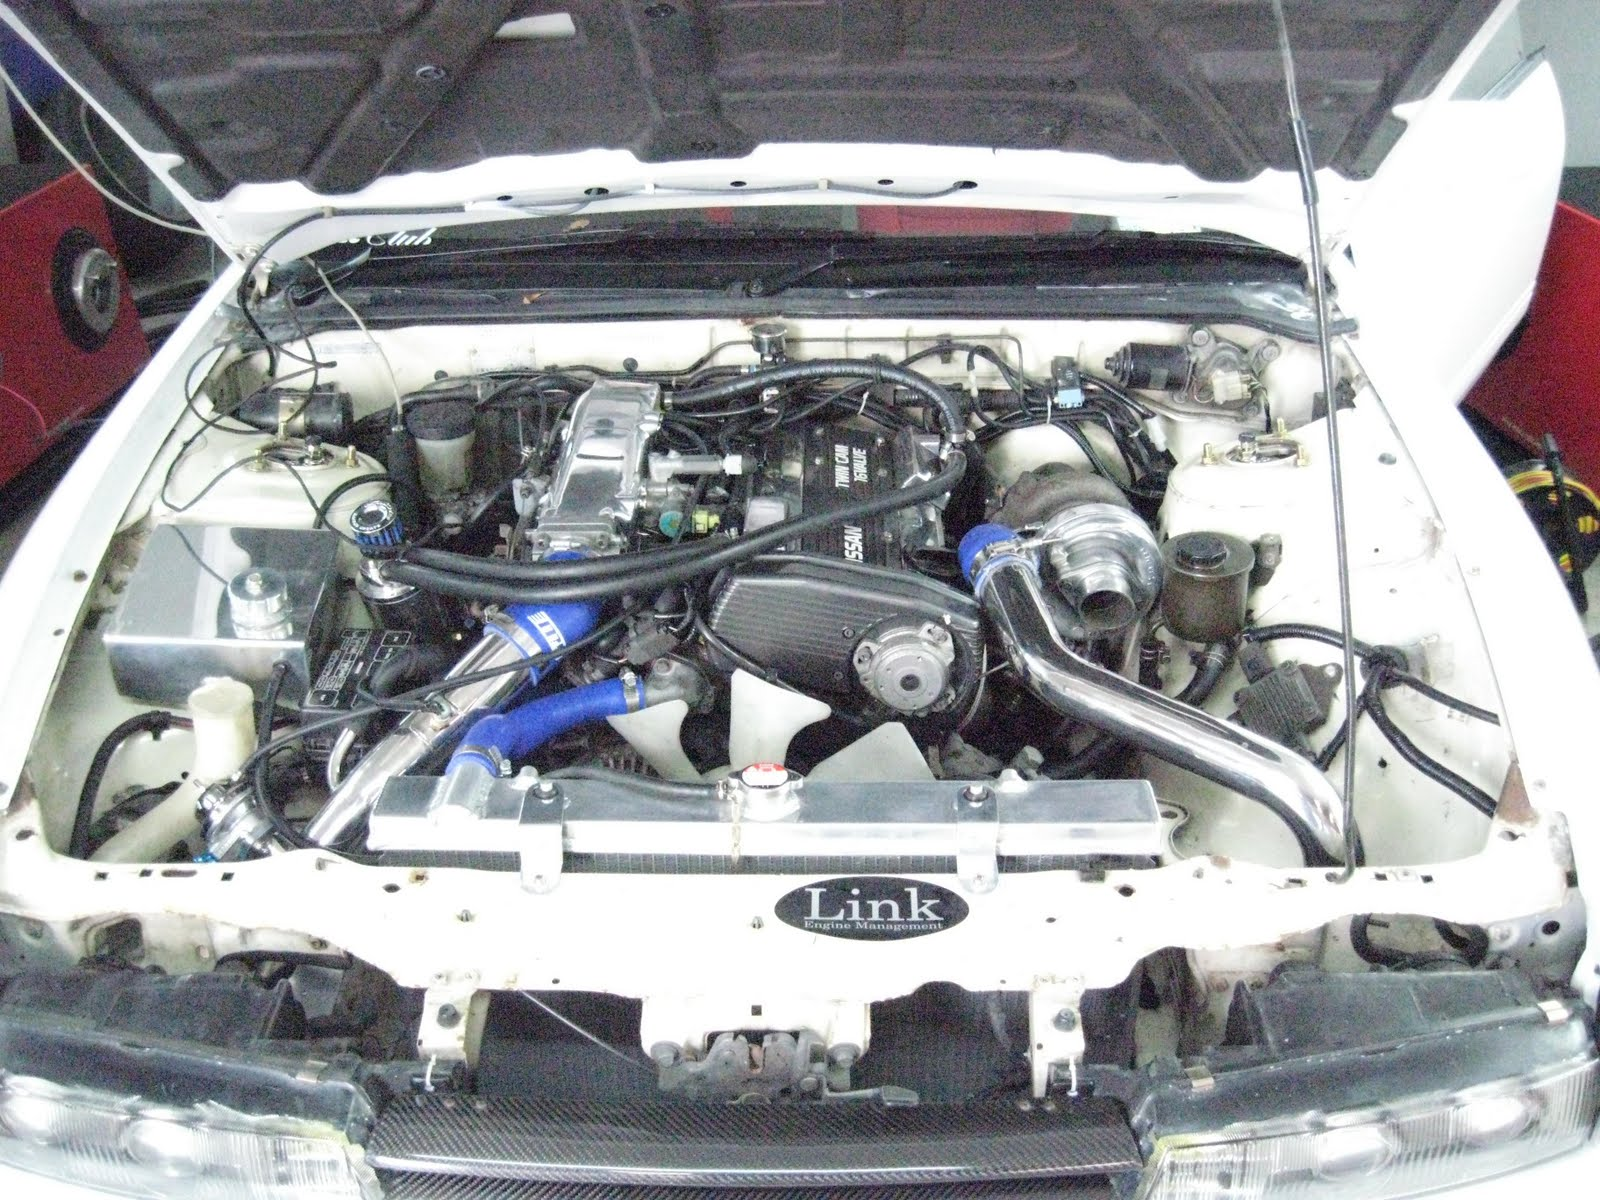 ST Hitec's Tuning Diary: S13 CA18 with LINK G4